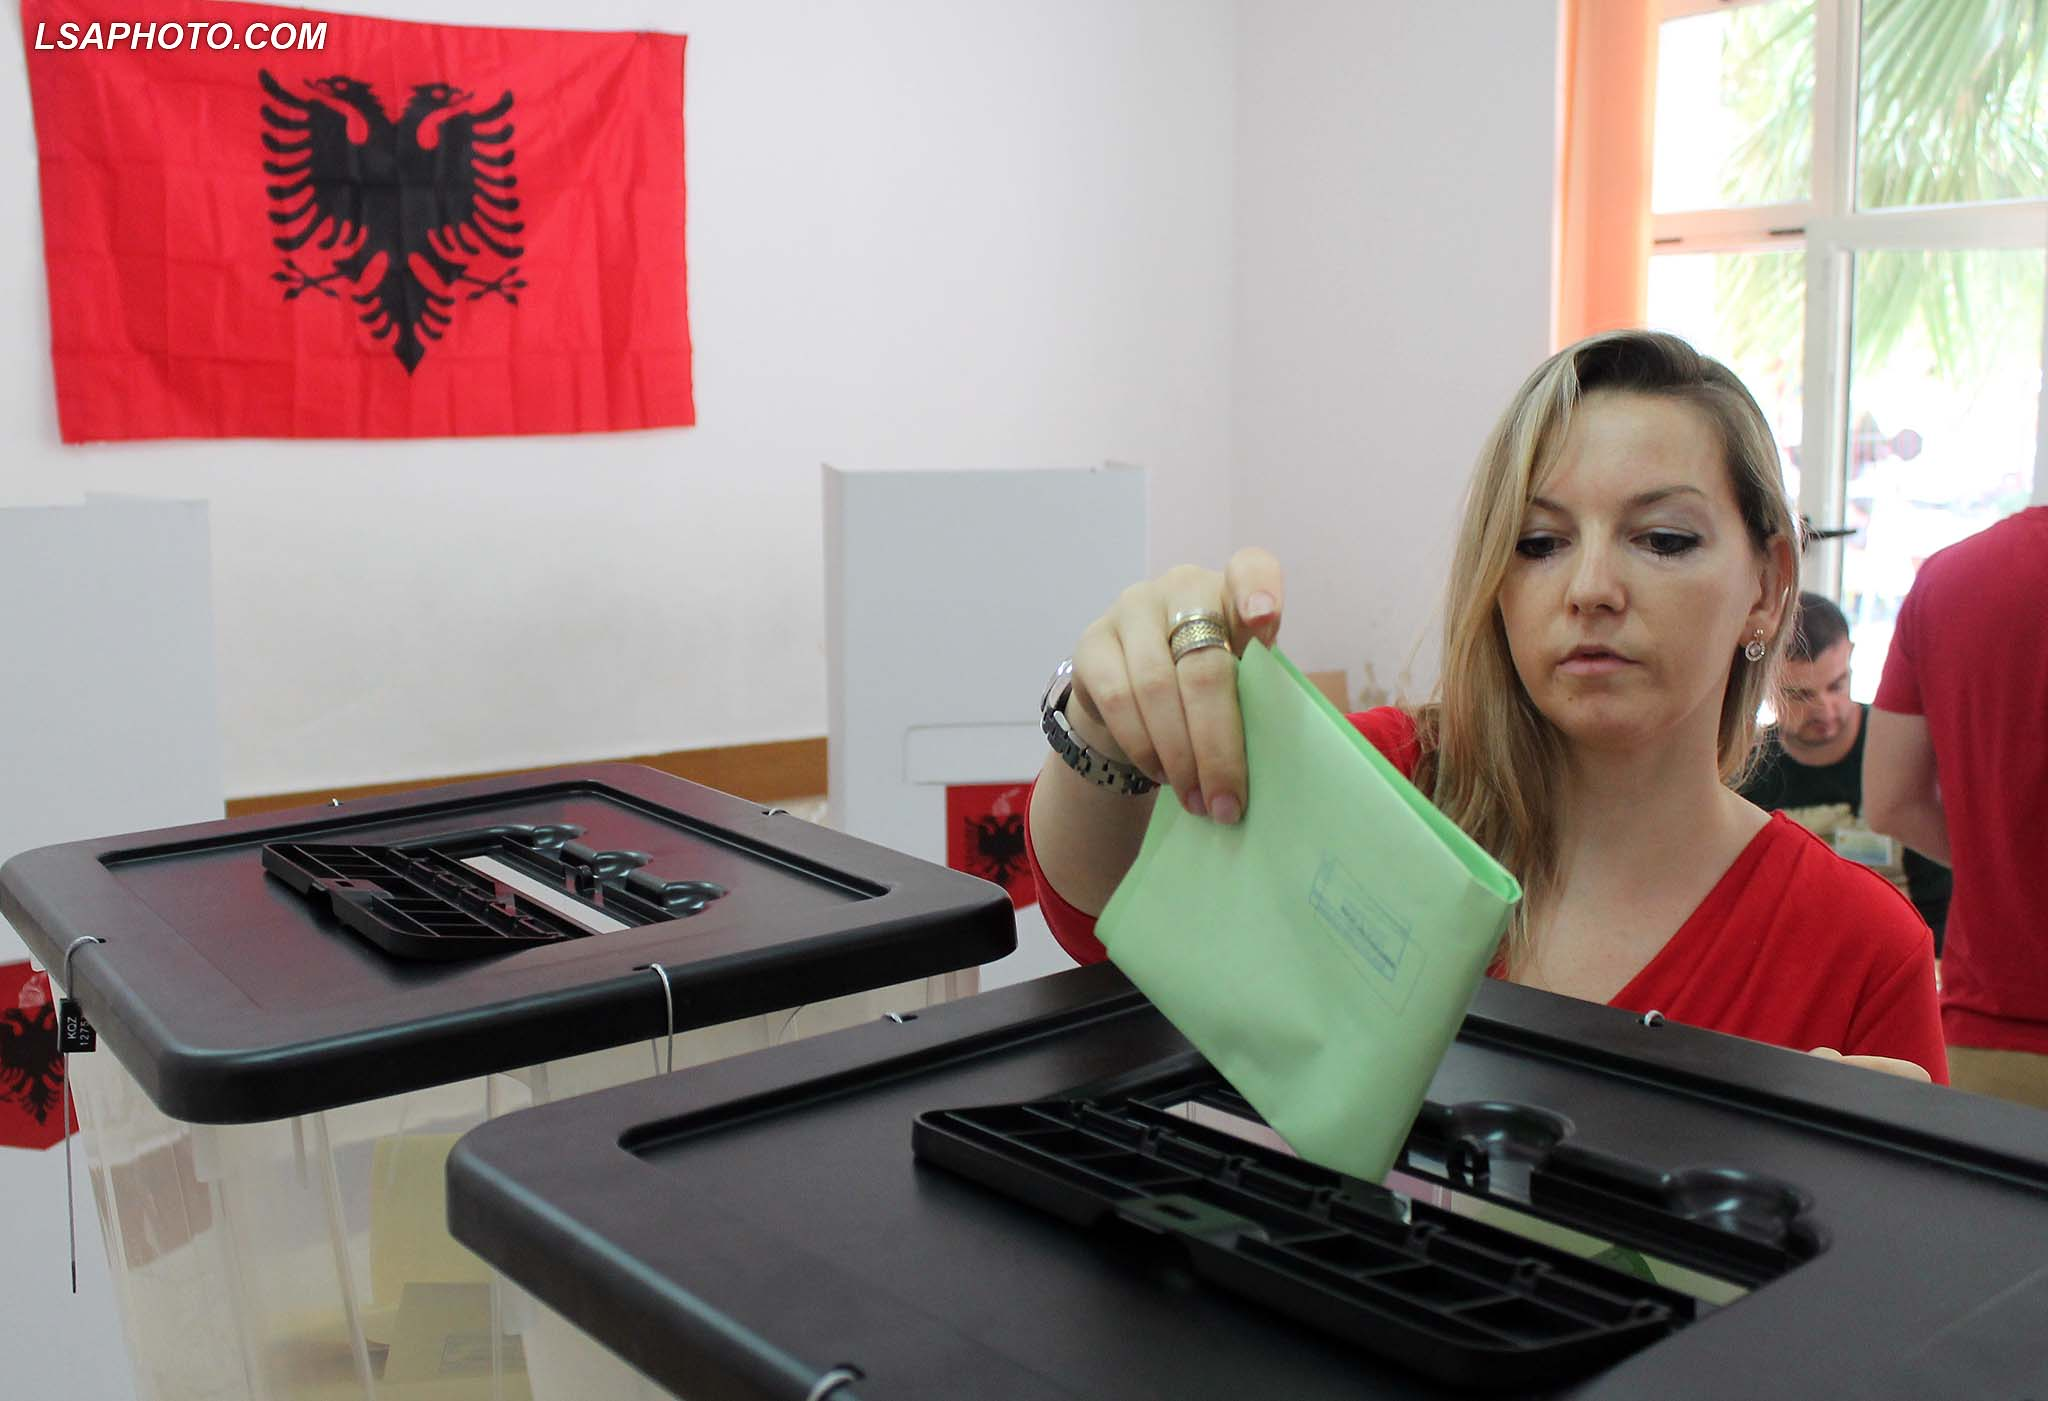 Albania: Preparations start for the local elections despite political gridlock